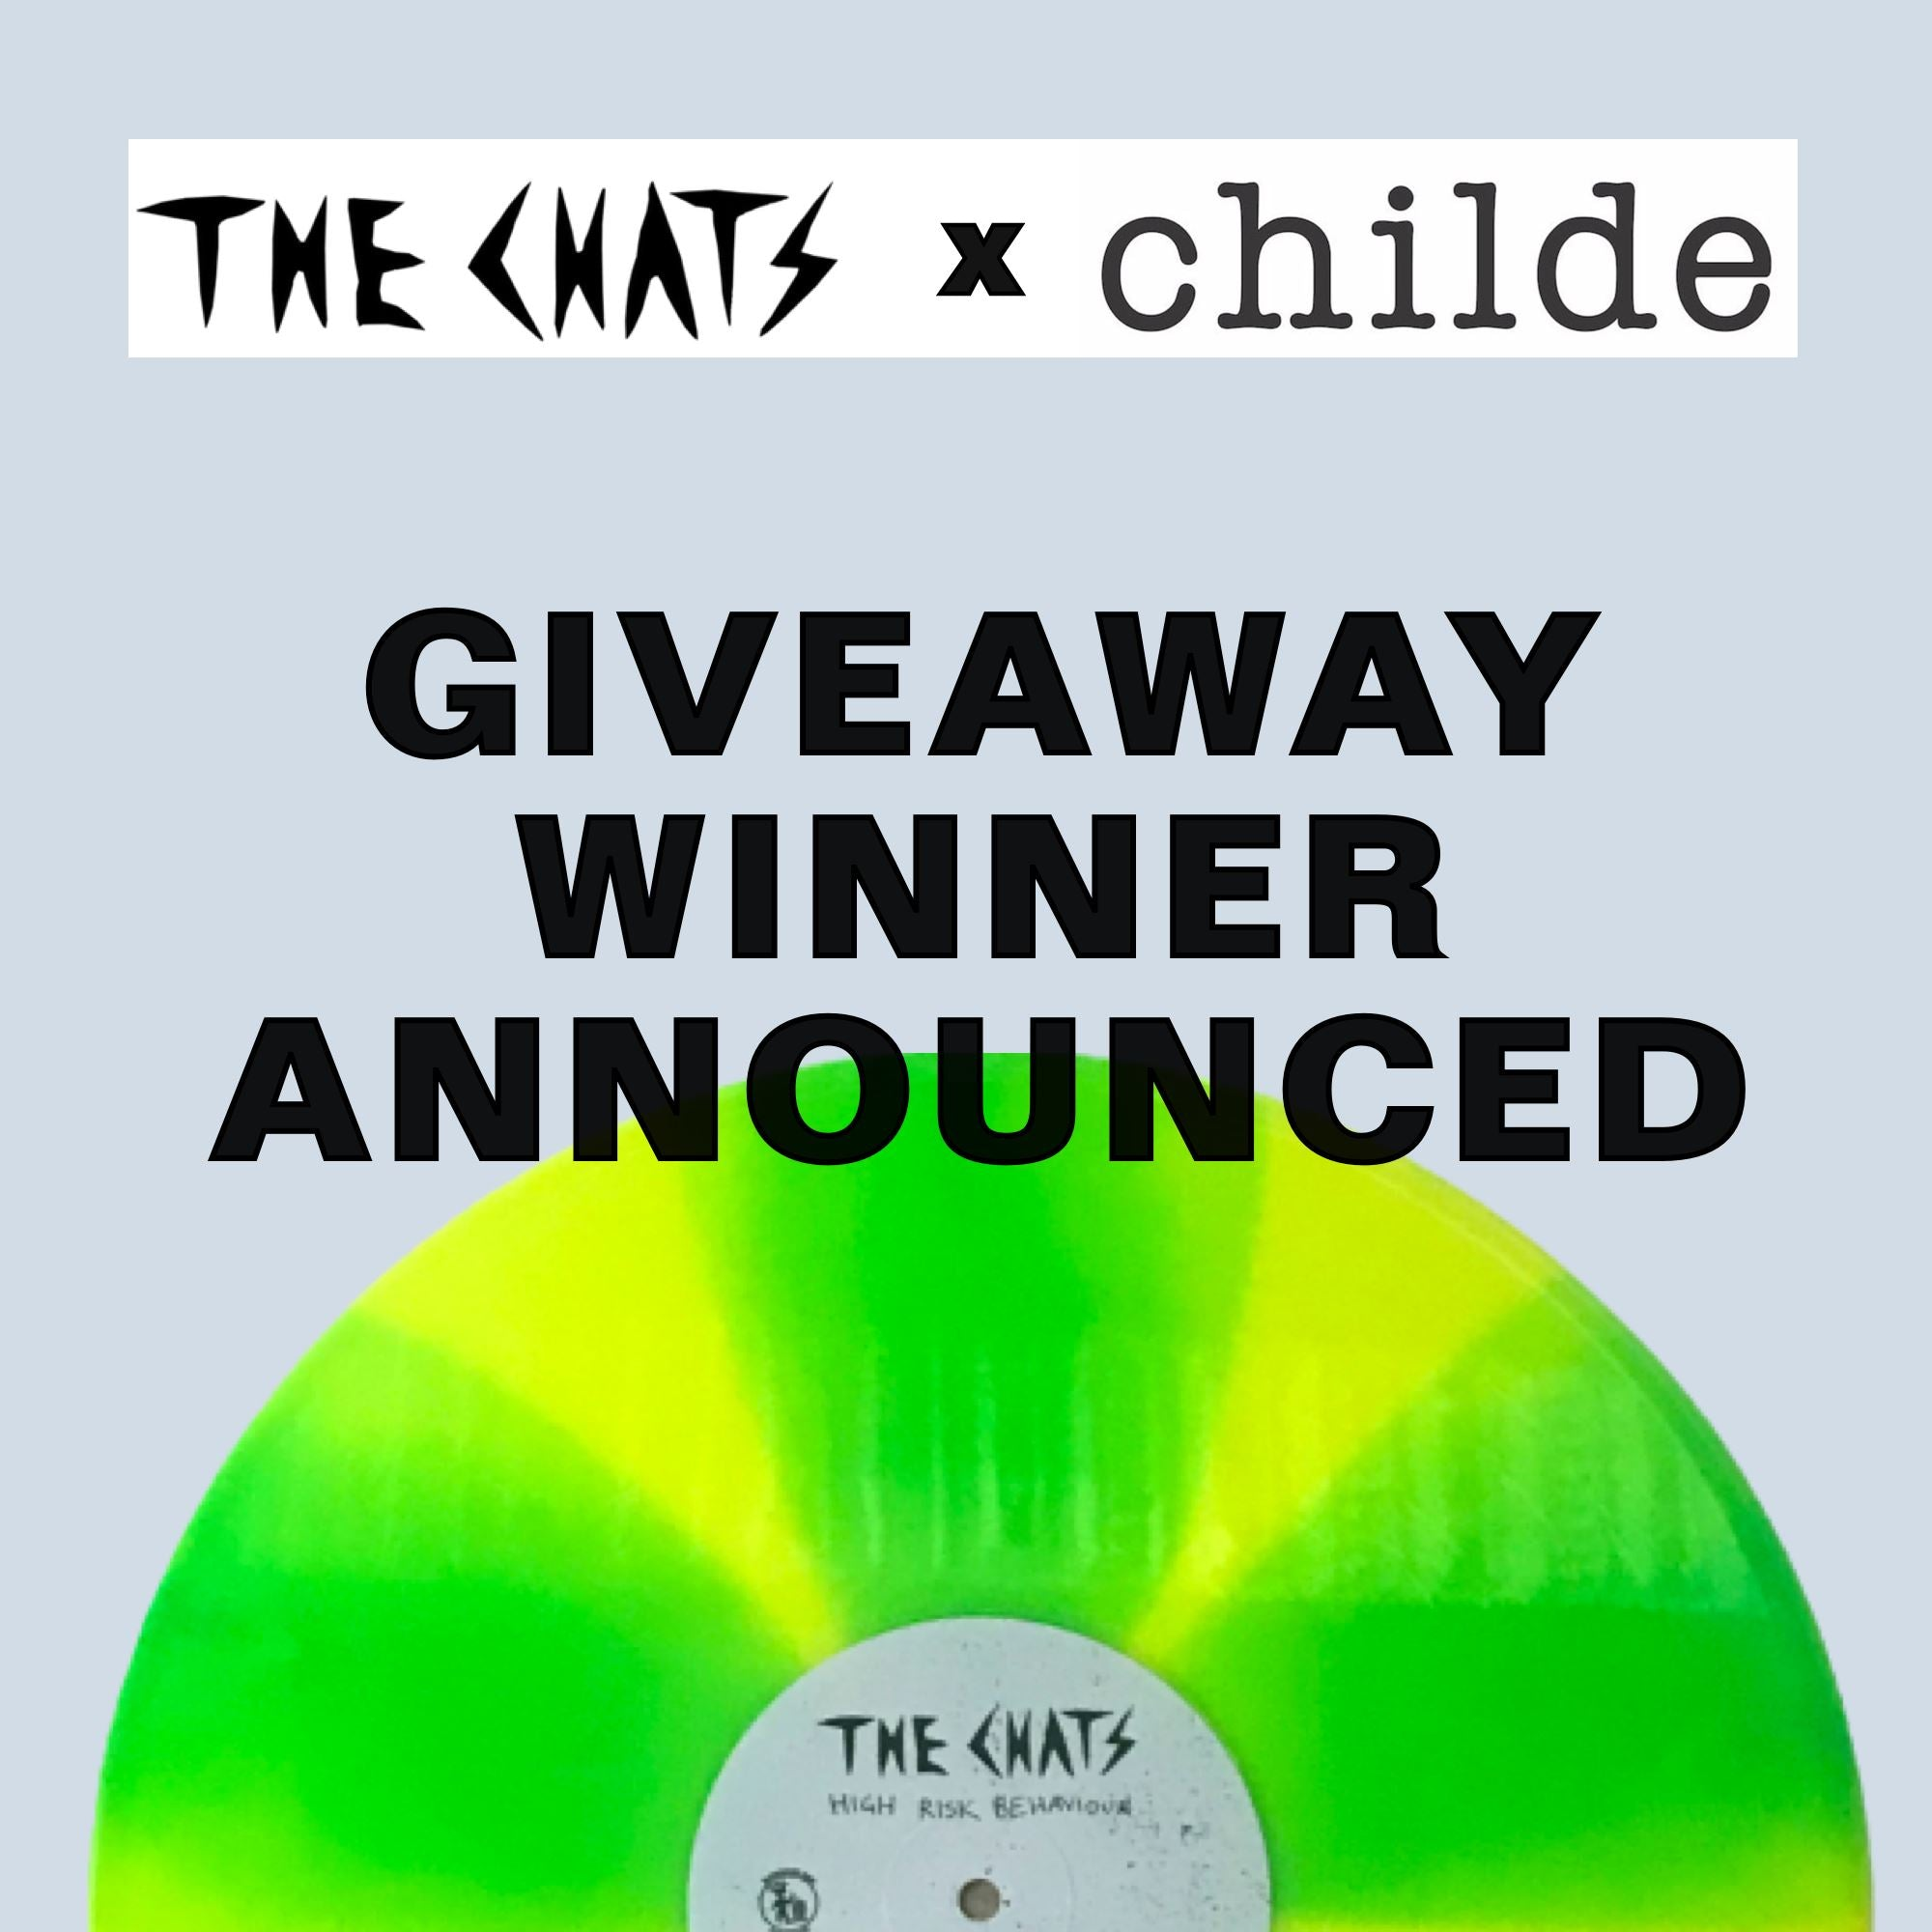 CHILDE x THE  CHATS GIVEAWAY - Winner Announced